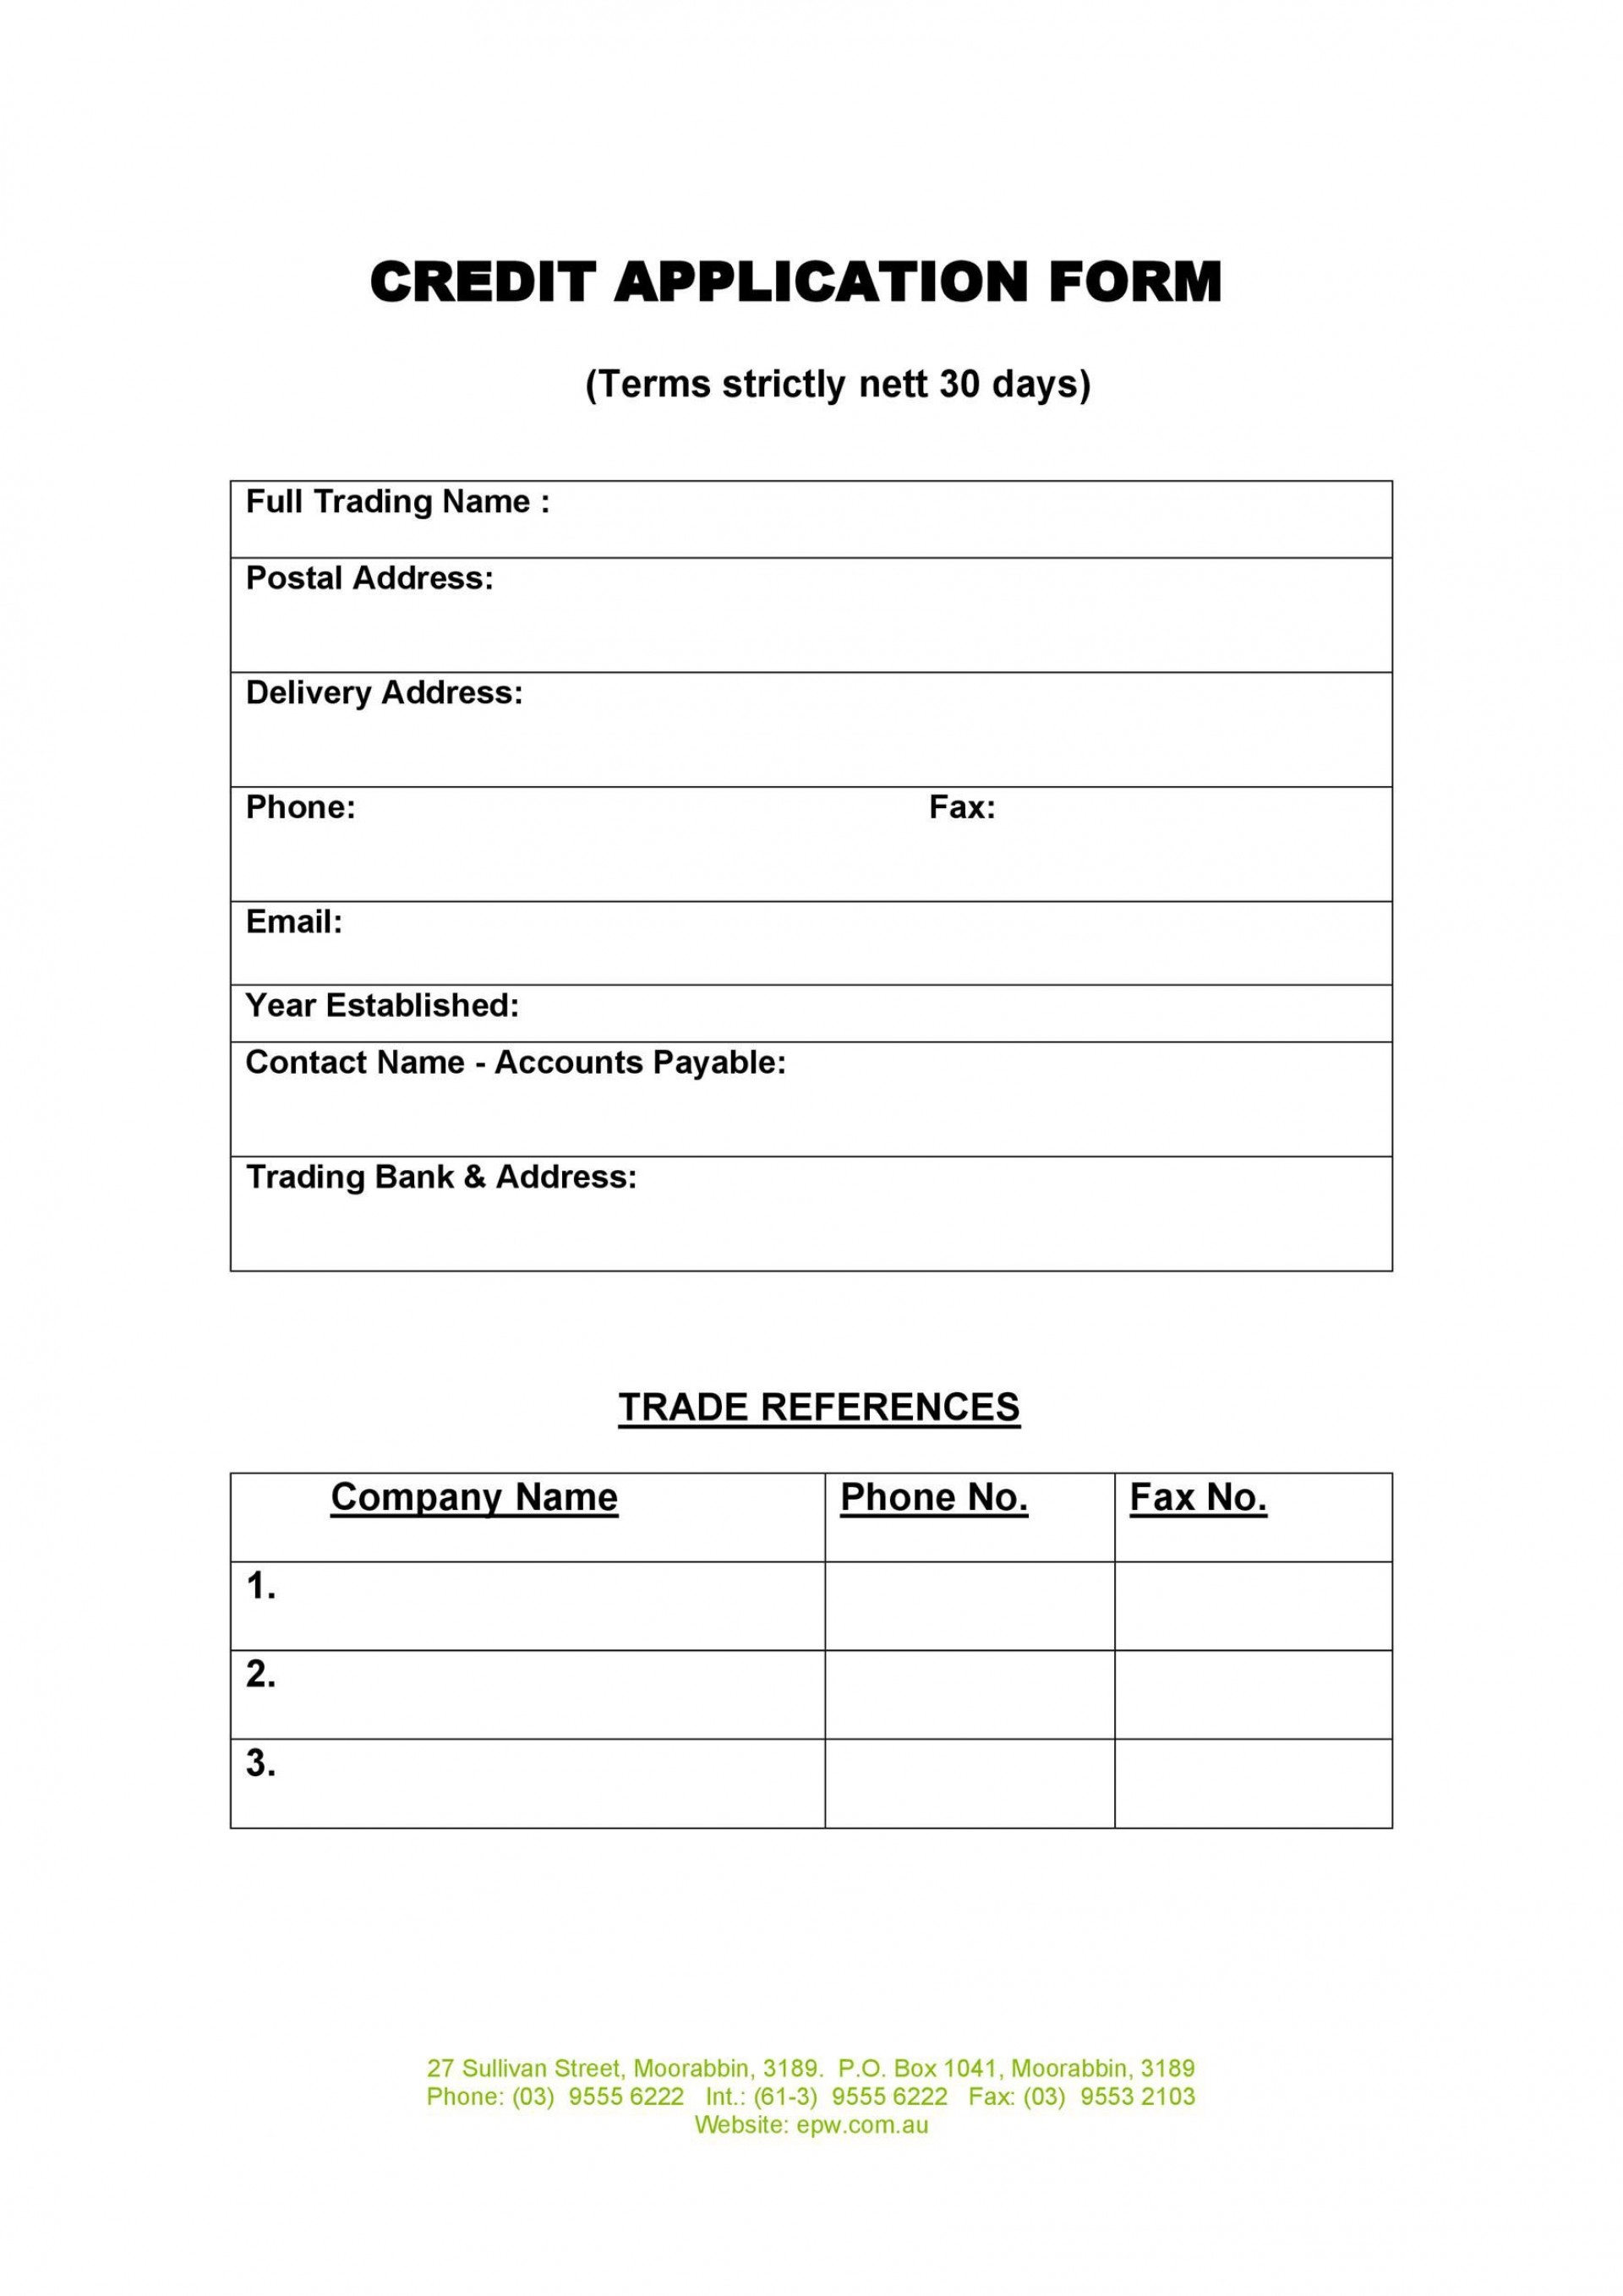 009 Dreaded Busines Credit Application Form Template Free Uk Picture 1920